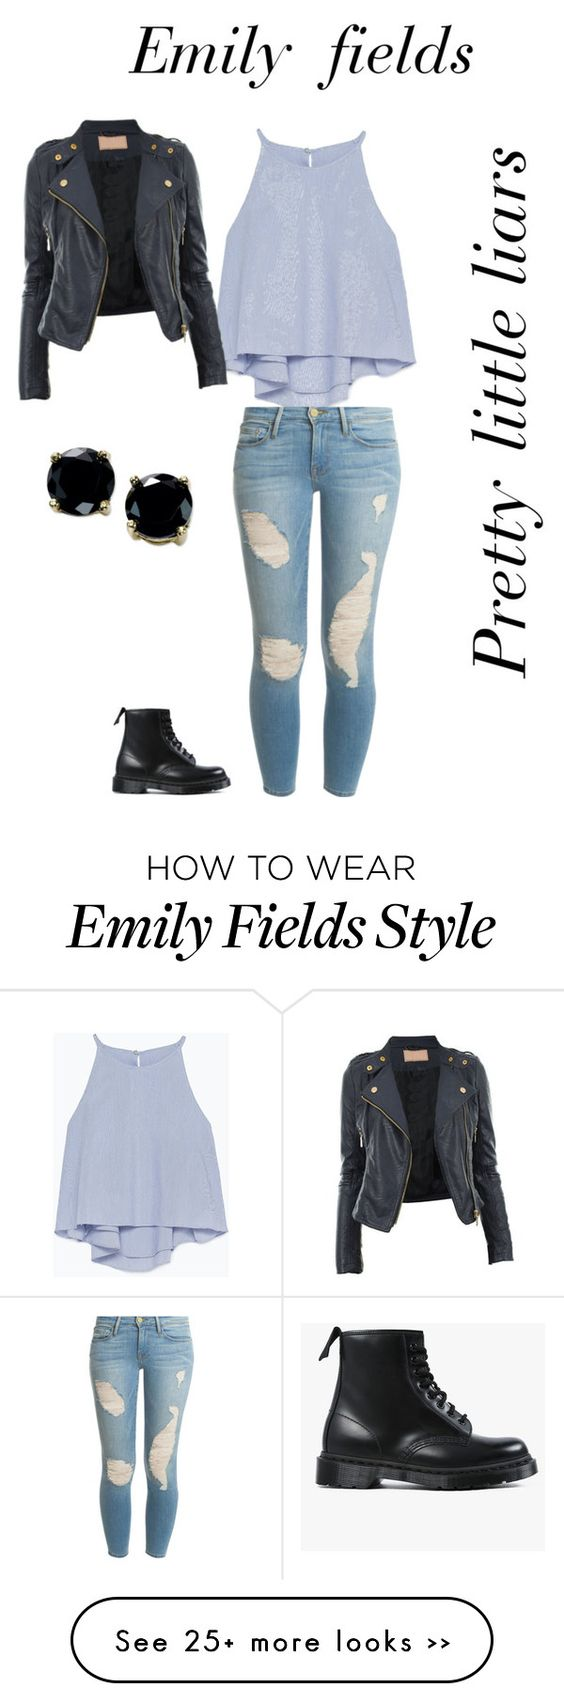 """""""Emily fields inspired look"""" by desiv2001 on Polyvore"""